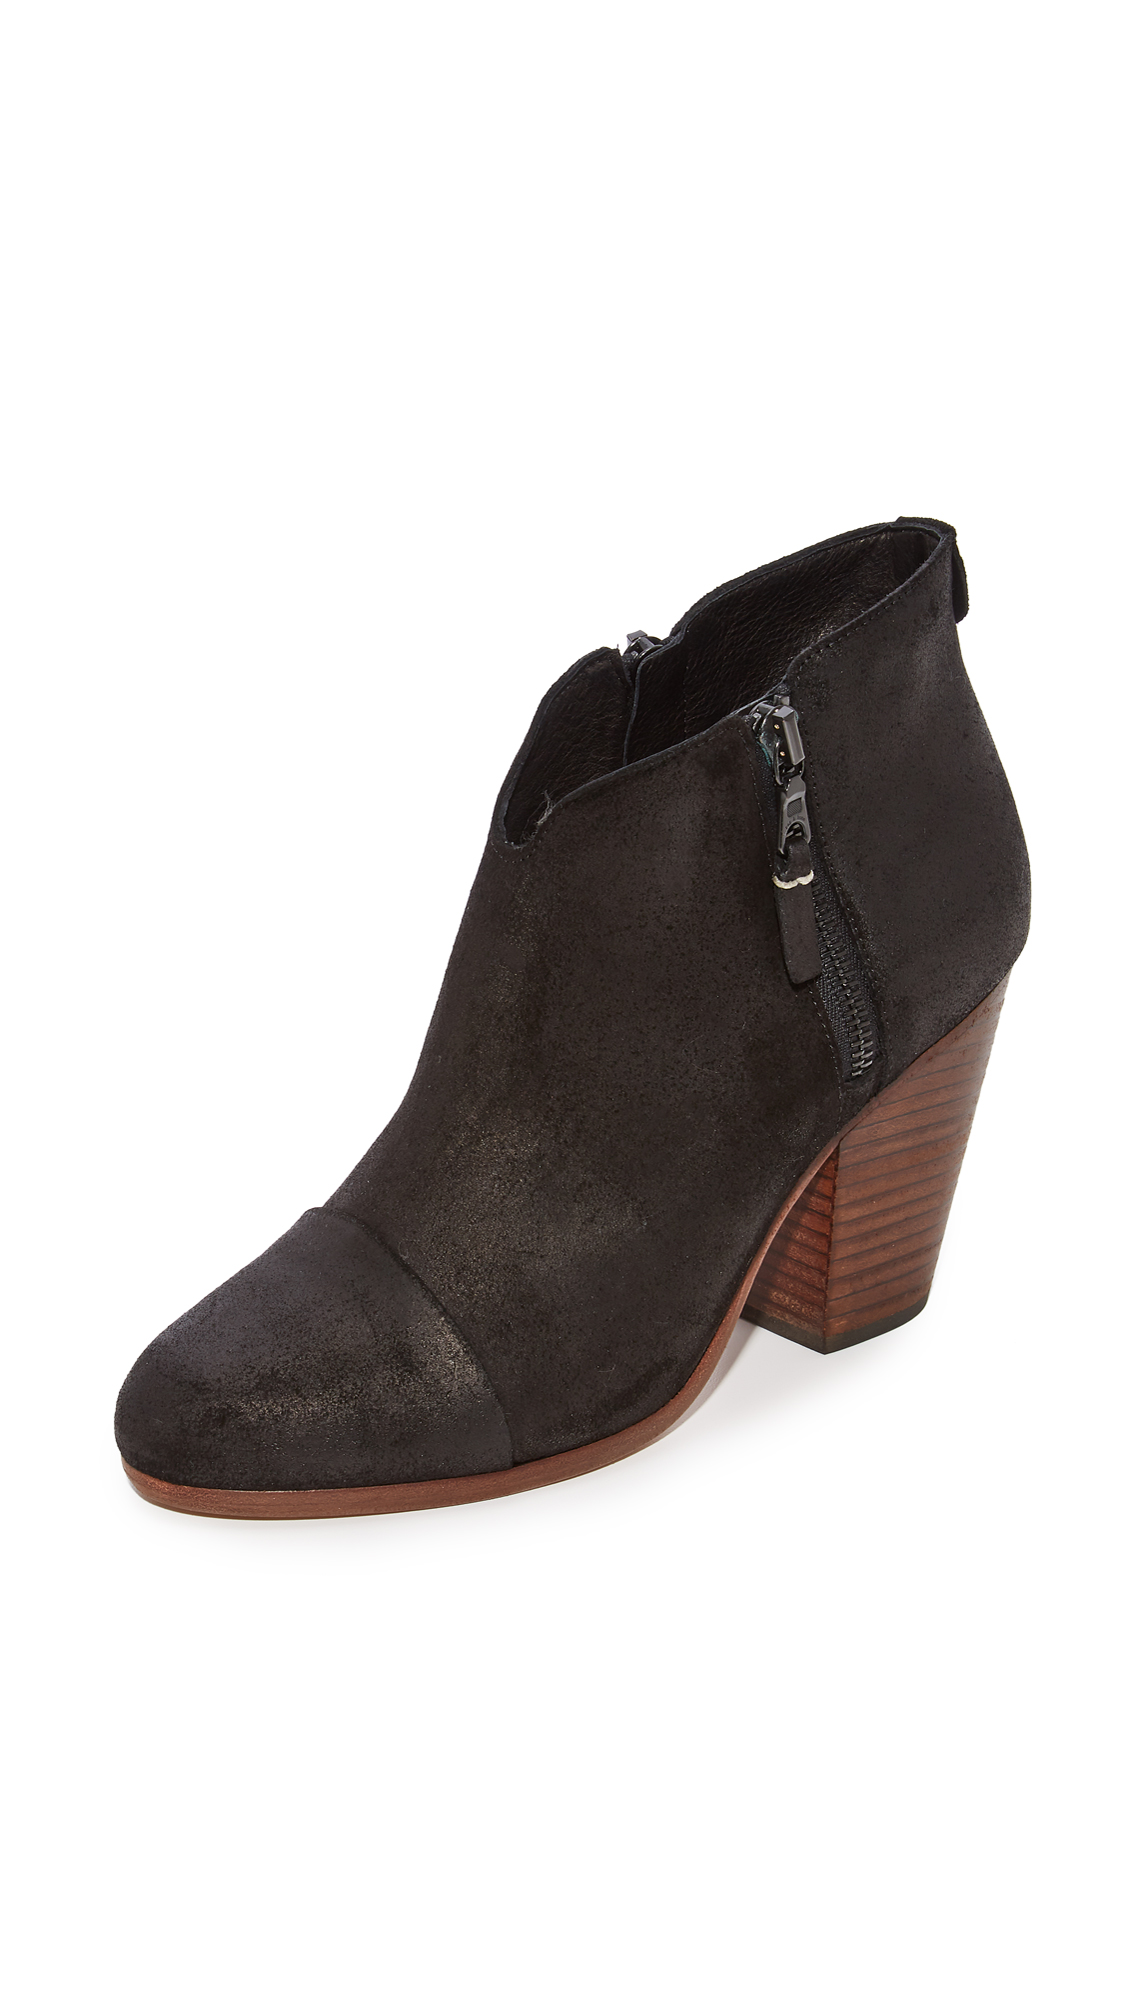 Rag & Bone Margot Booties - Black